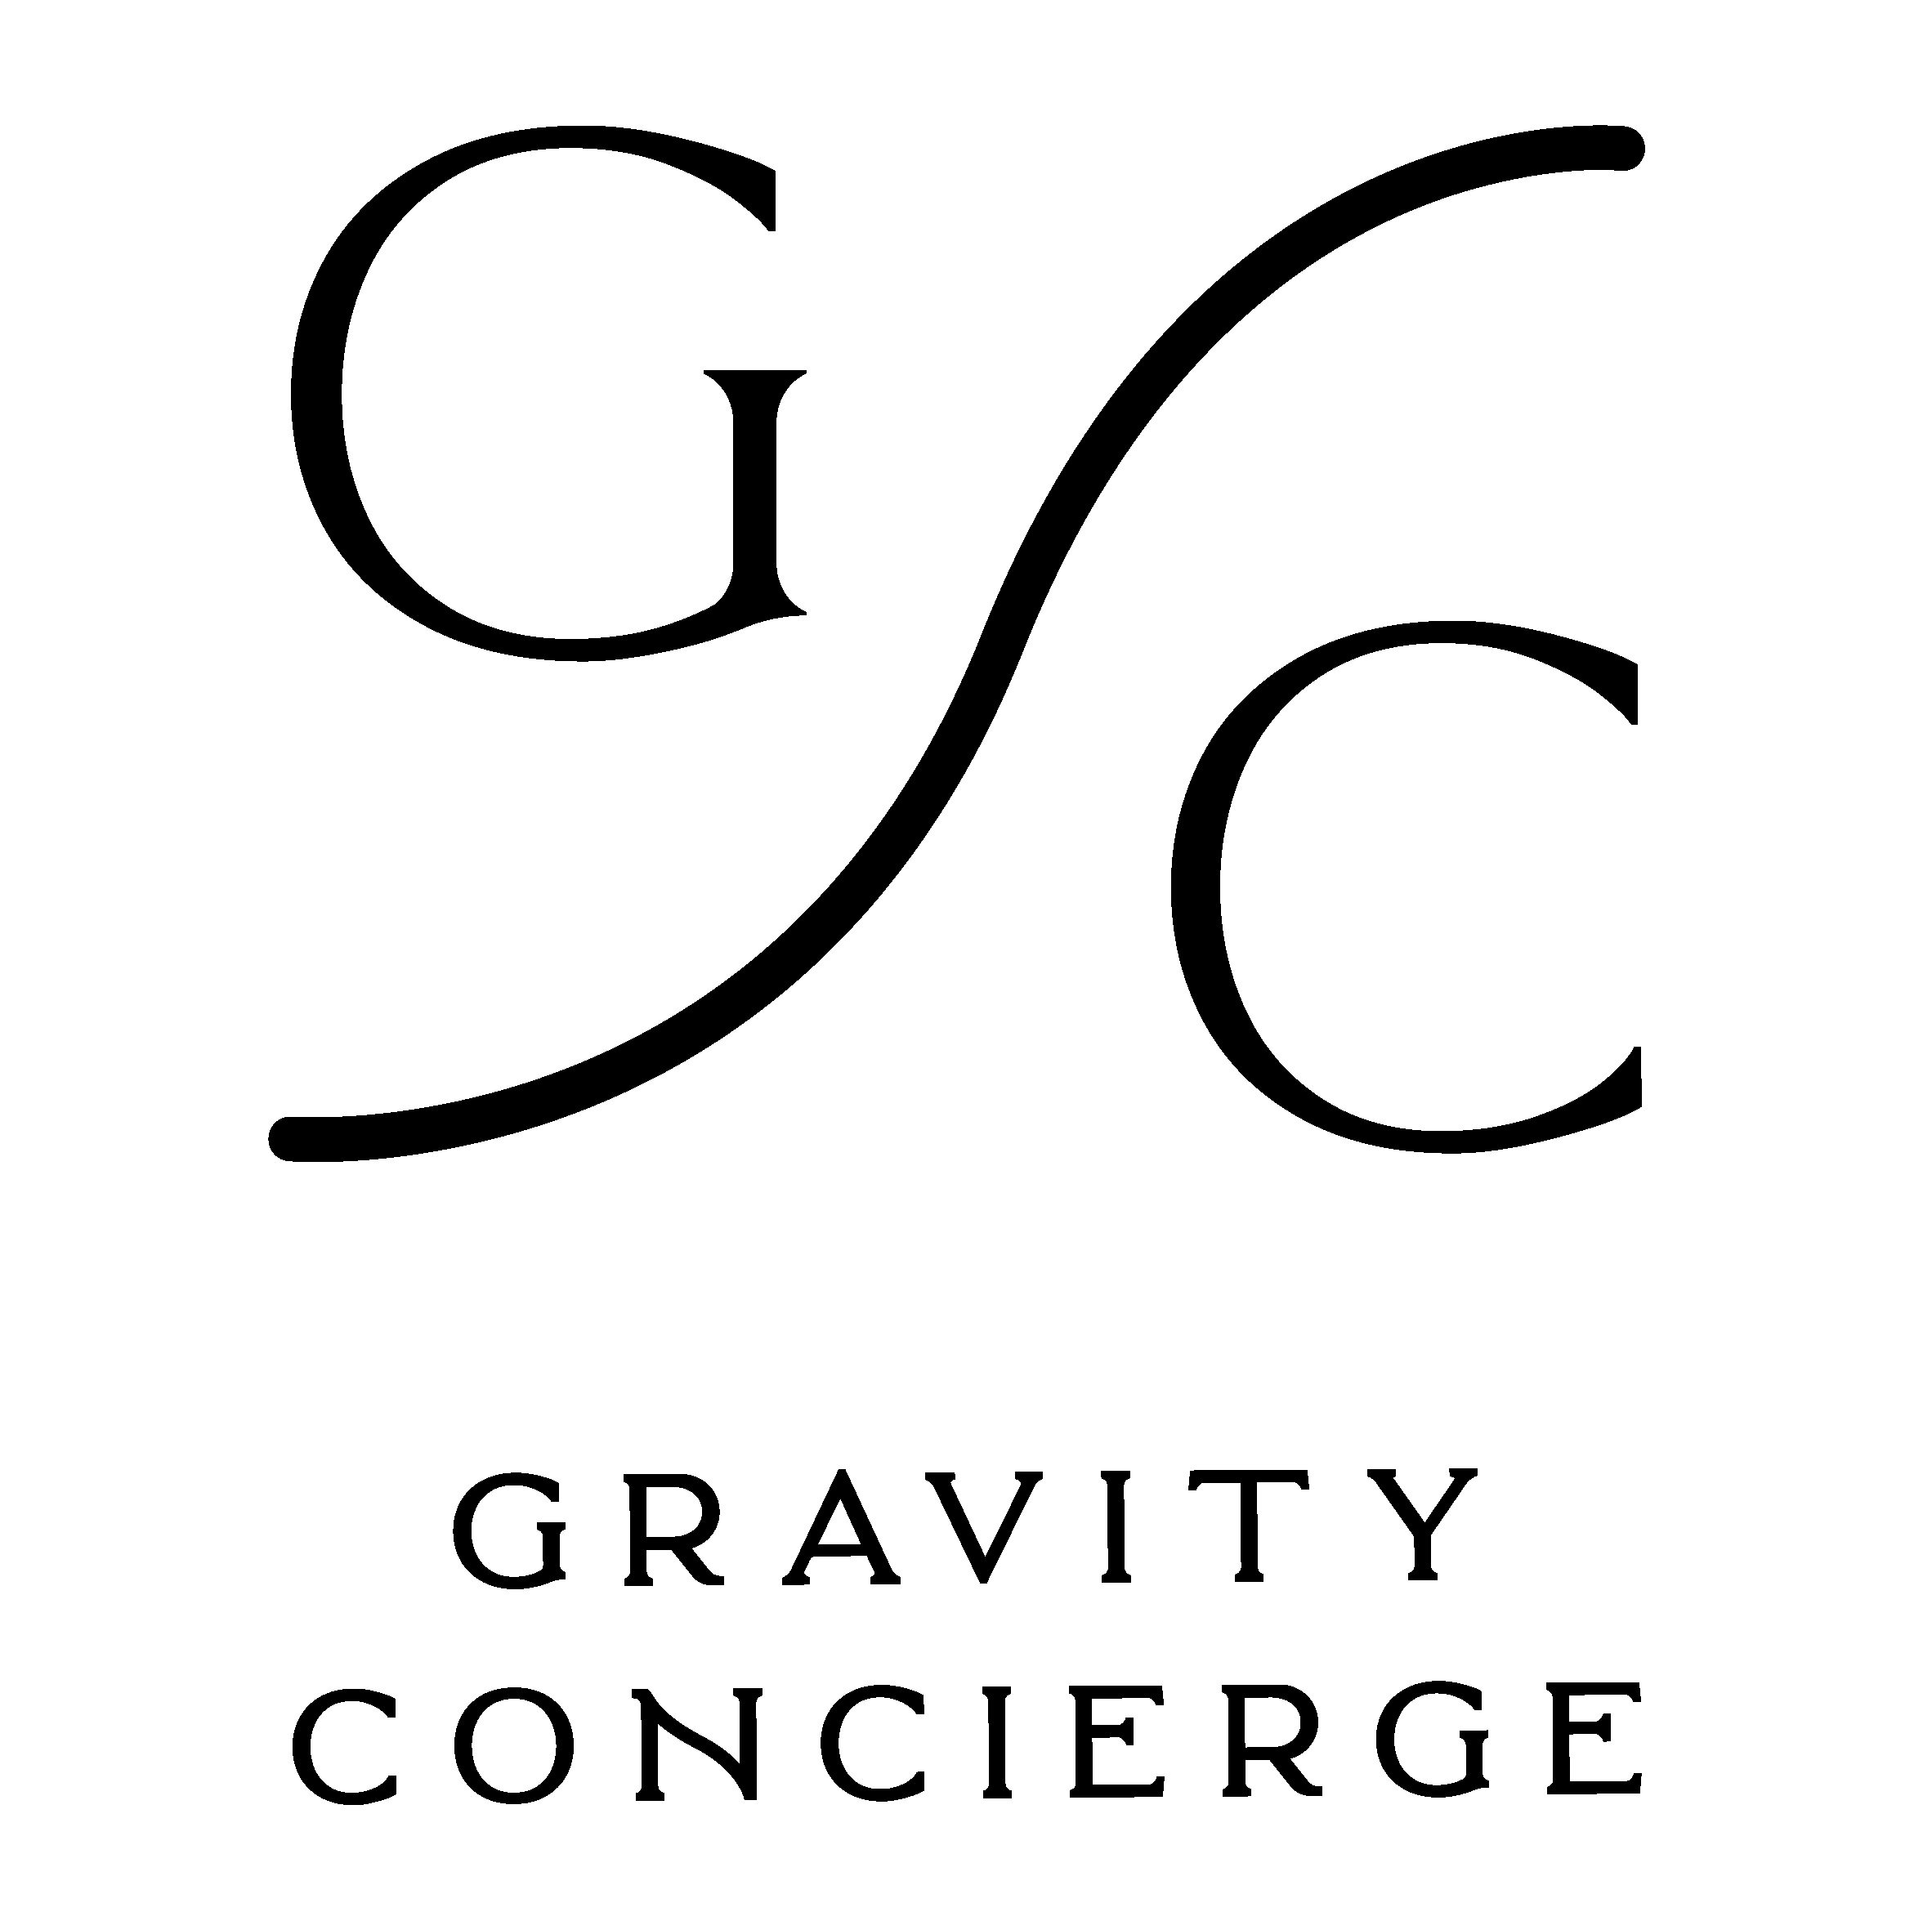 GRAVITY CONCIERGE